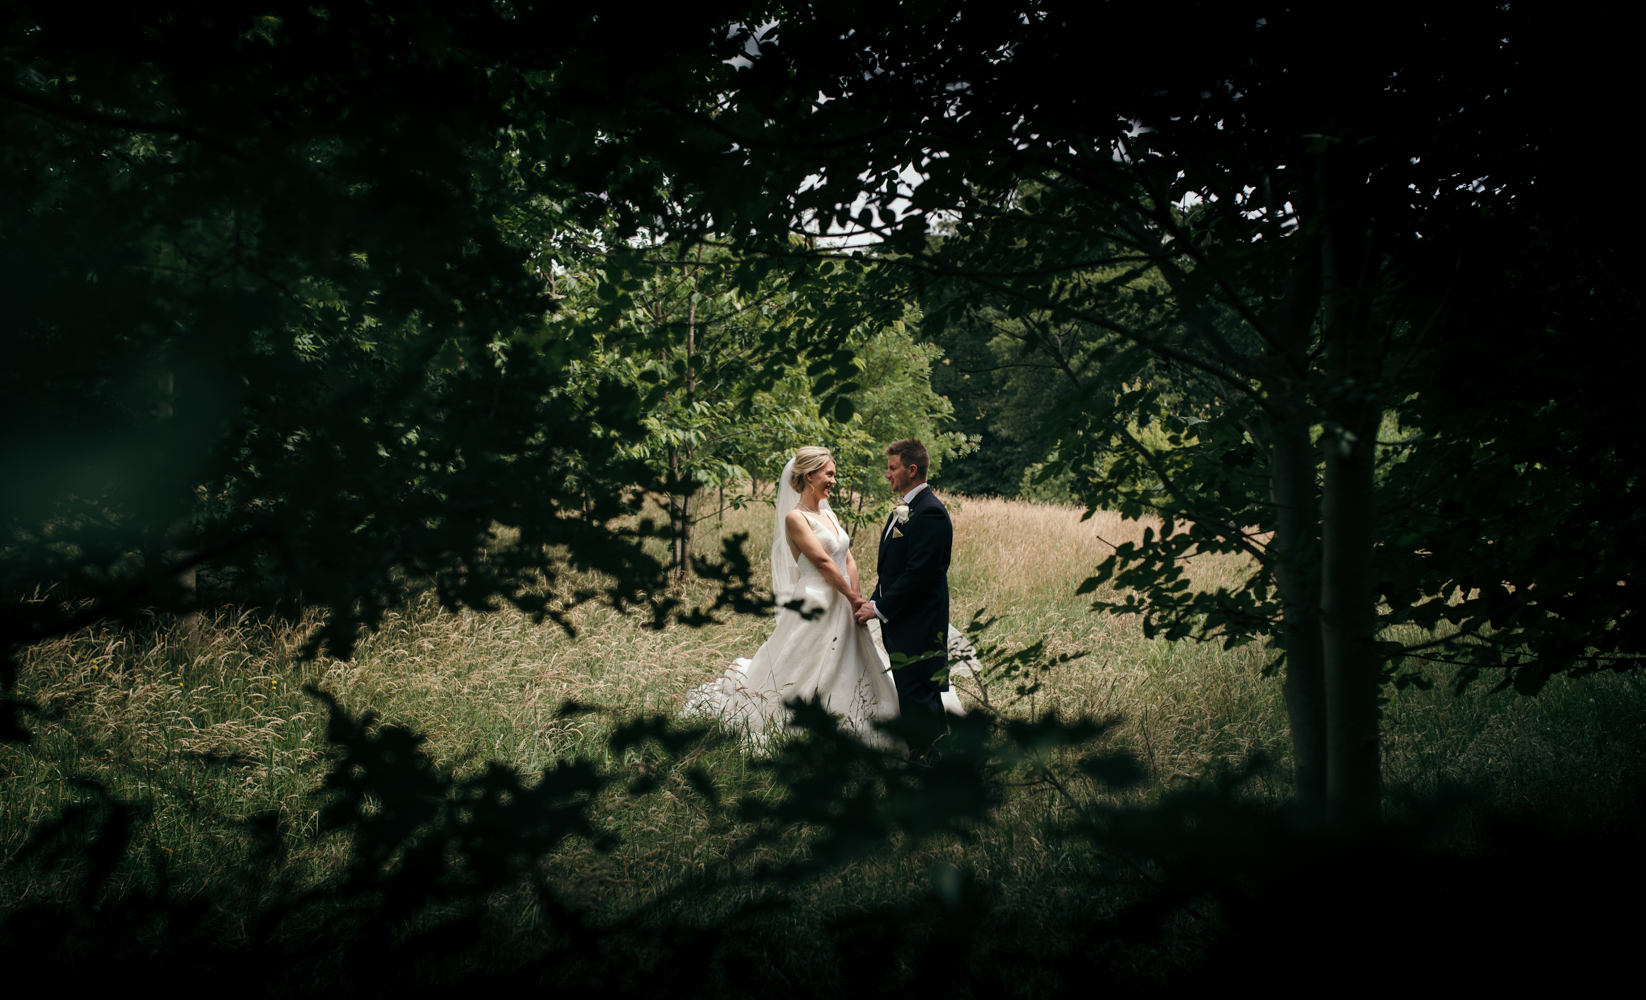 The bride and groom standing in a field during the couples portrait photo shoot